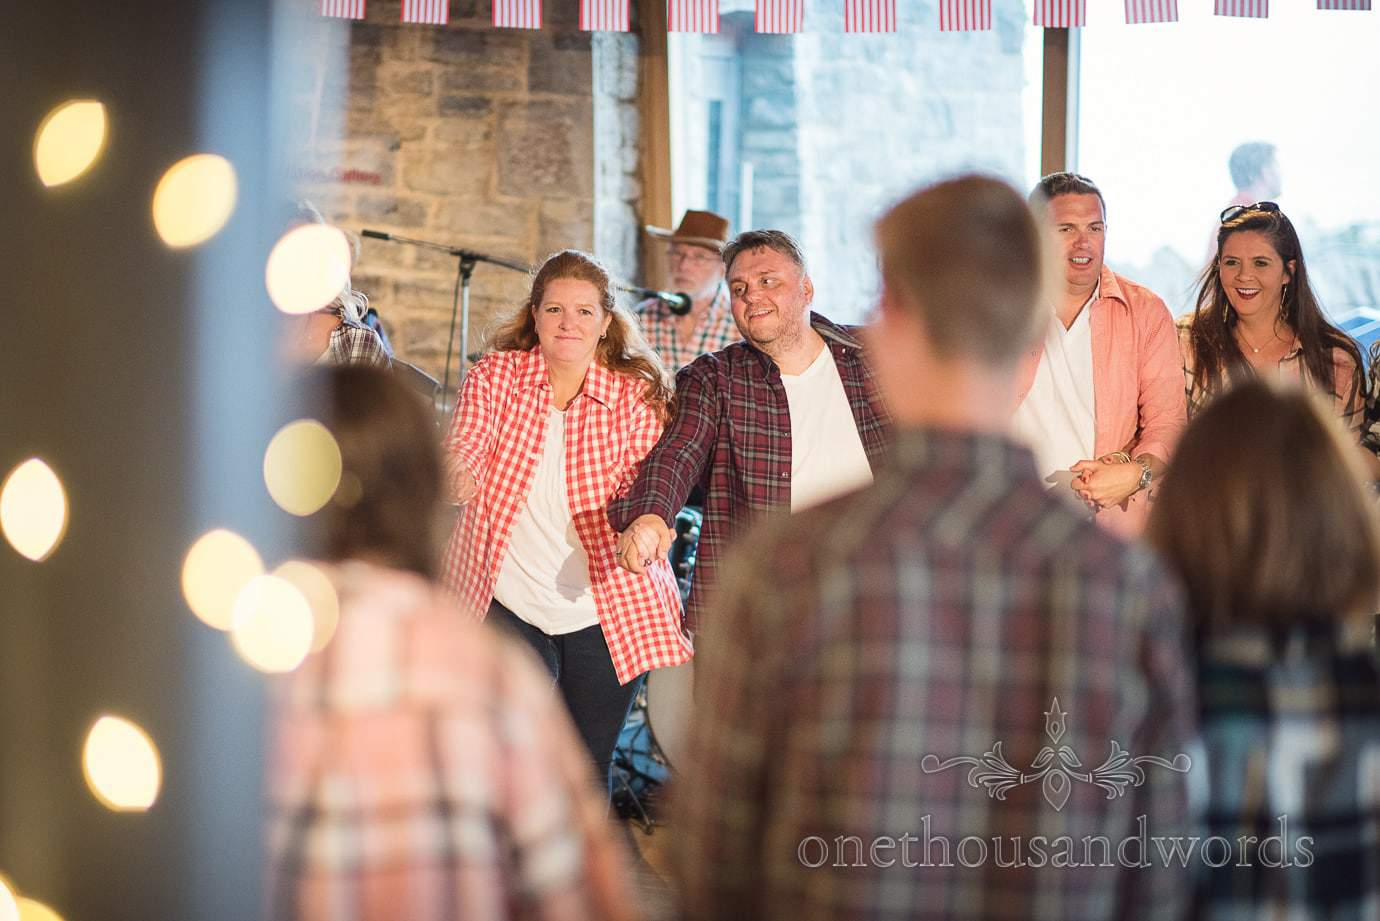 Wedding guests enjoy barn dance at Durlston Castle wedding venue in Swanage, Dorset